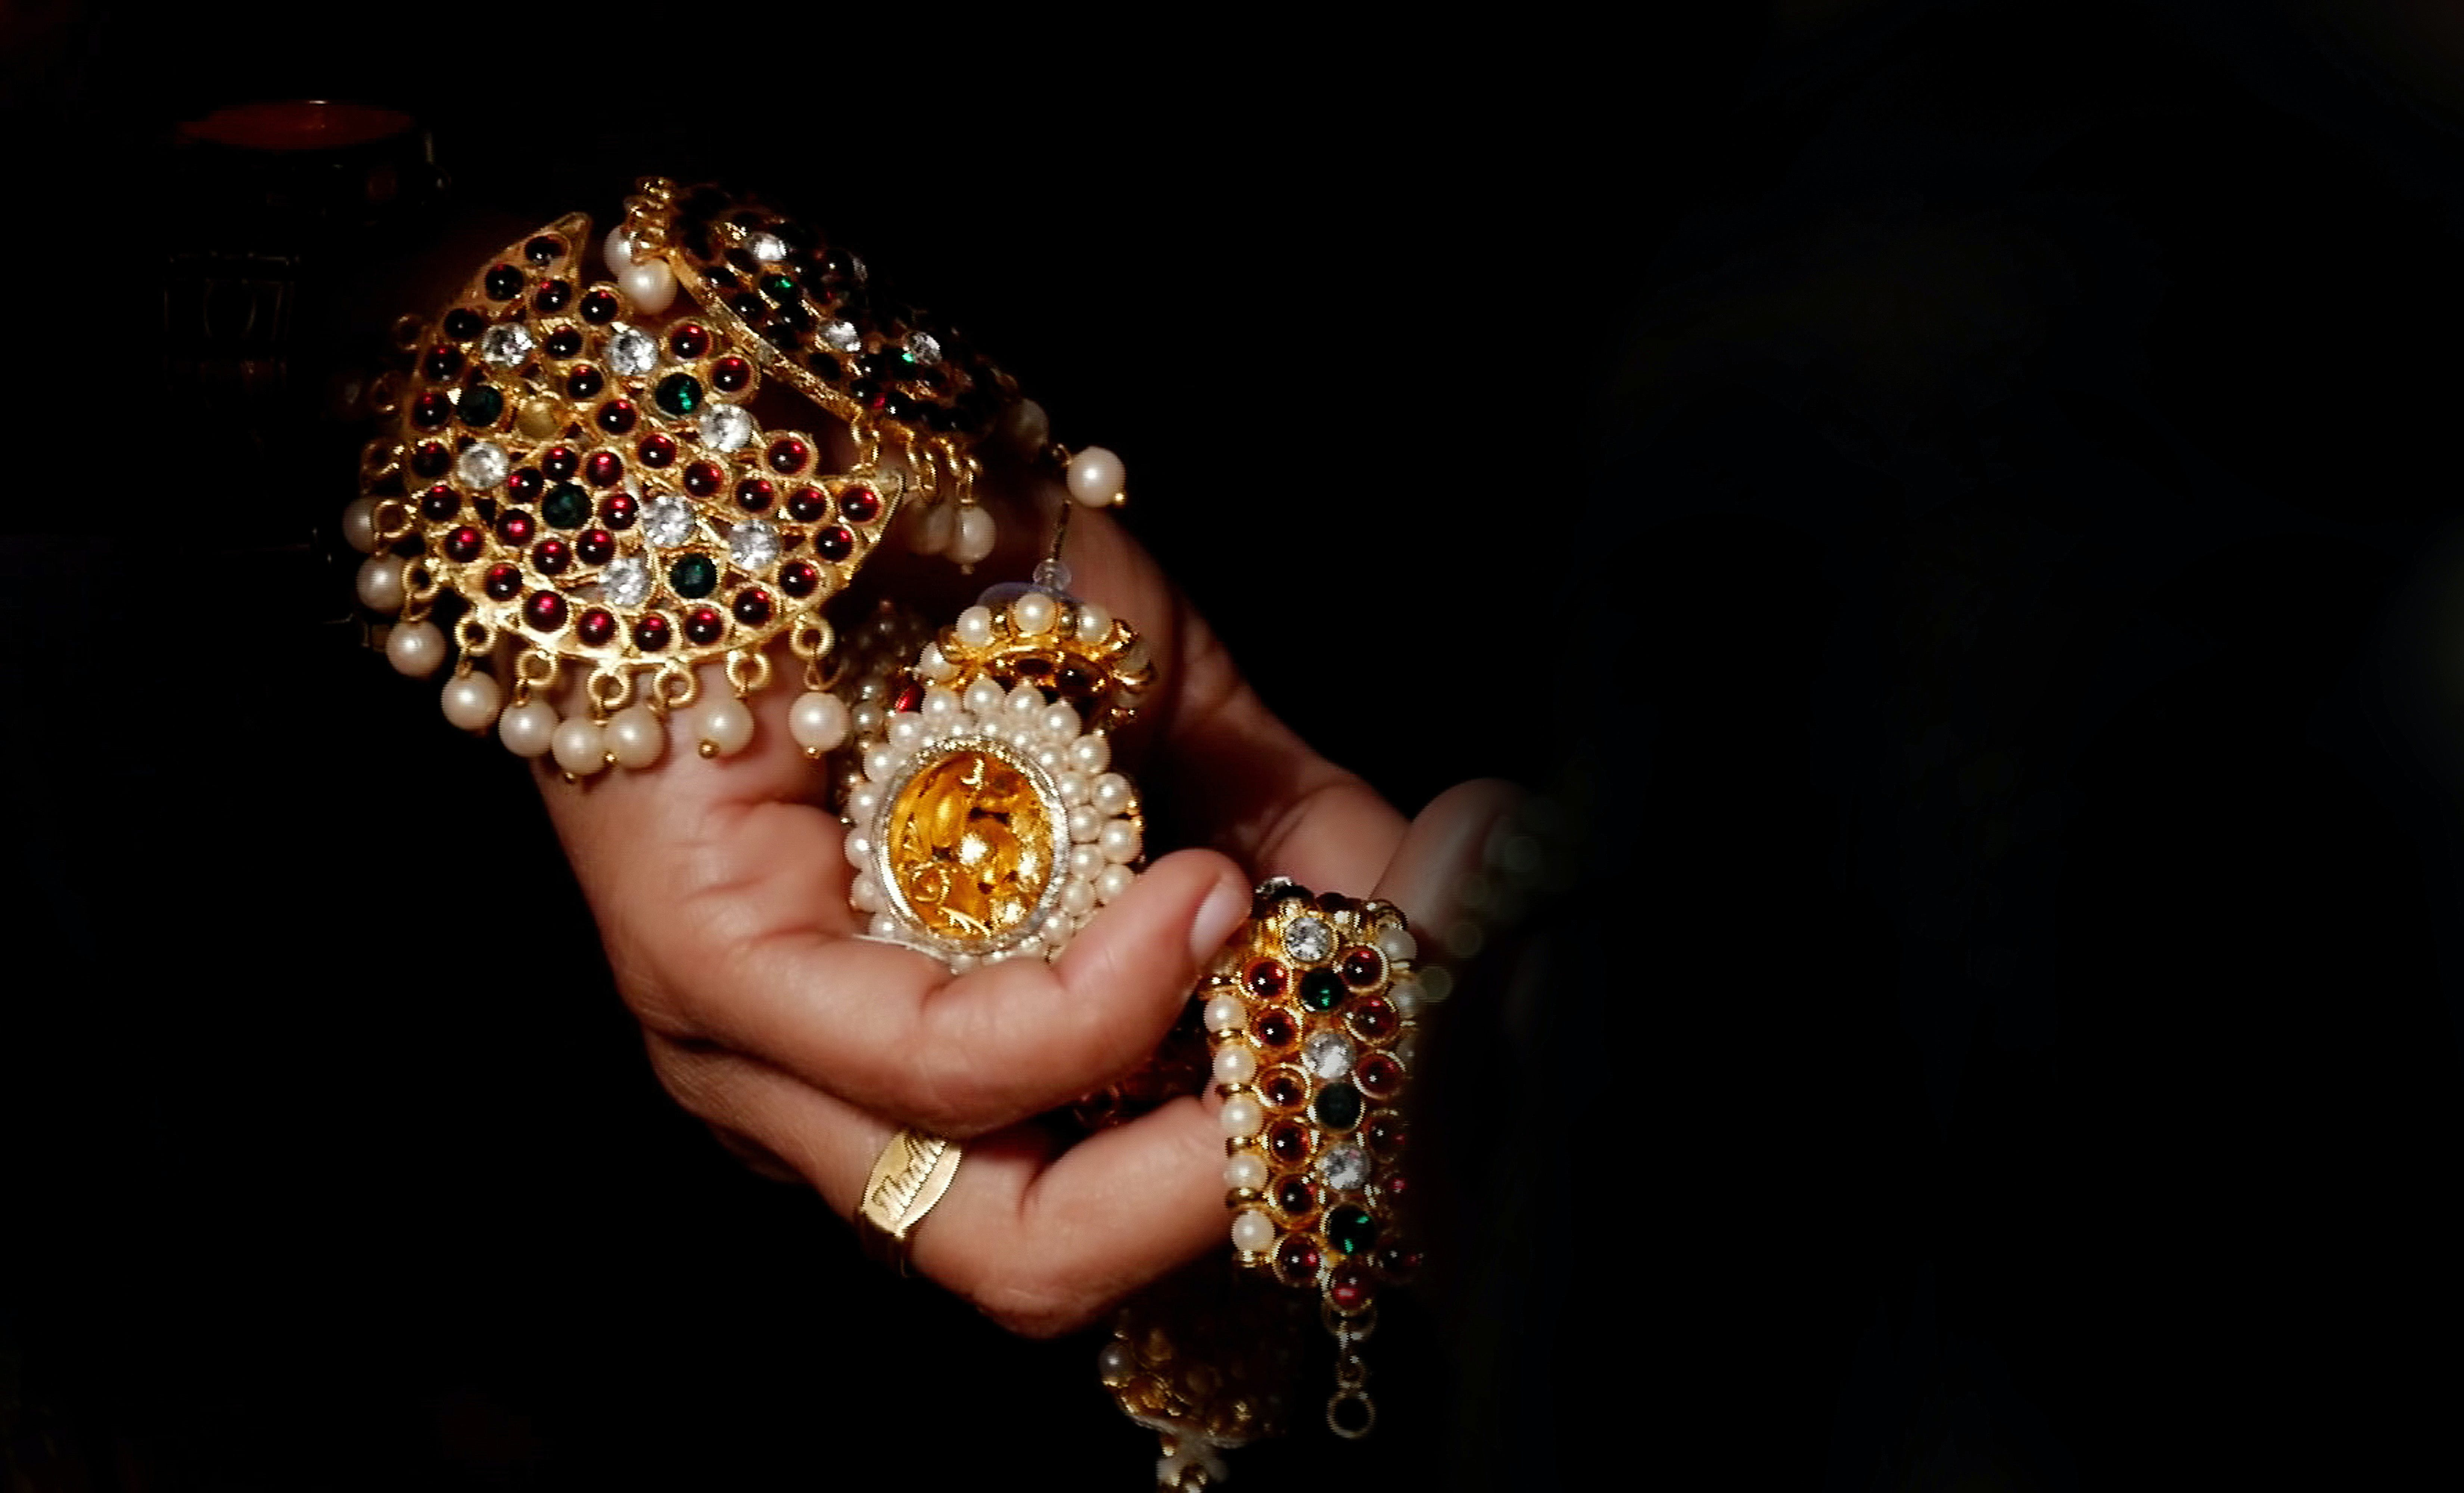 Person Holding Gold-colored and White Jewelry